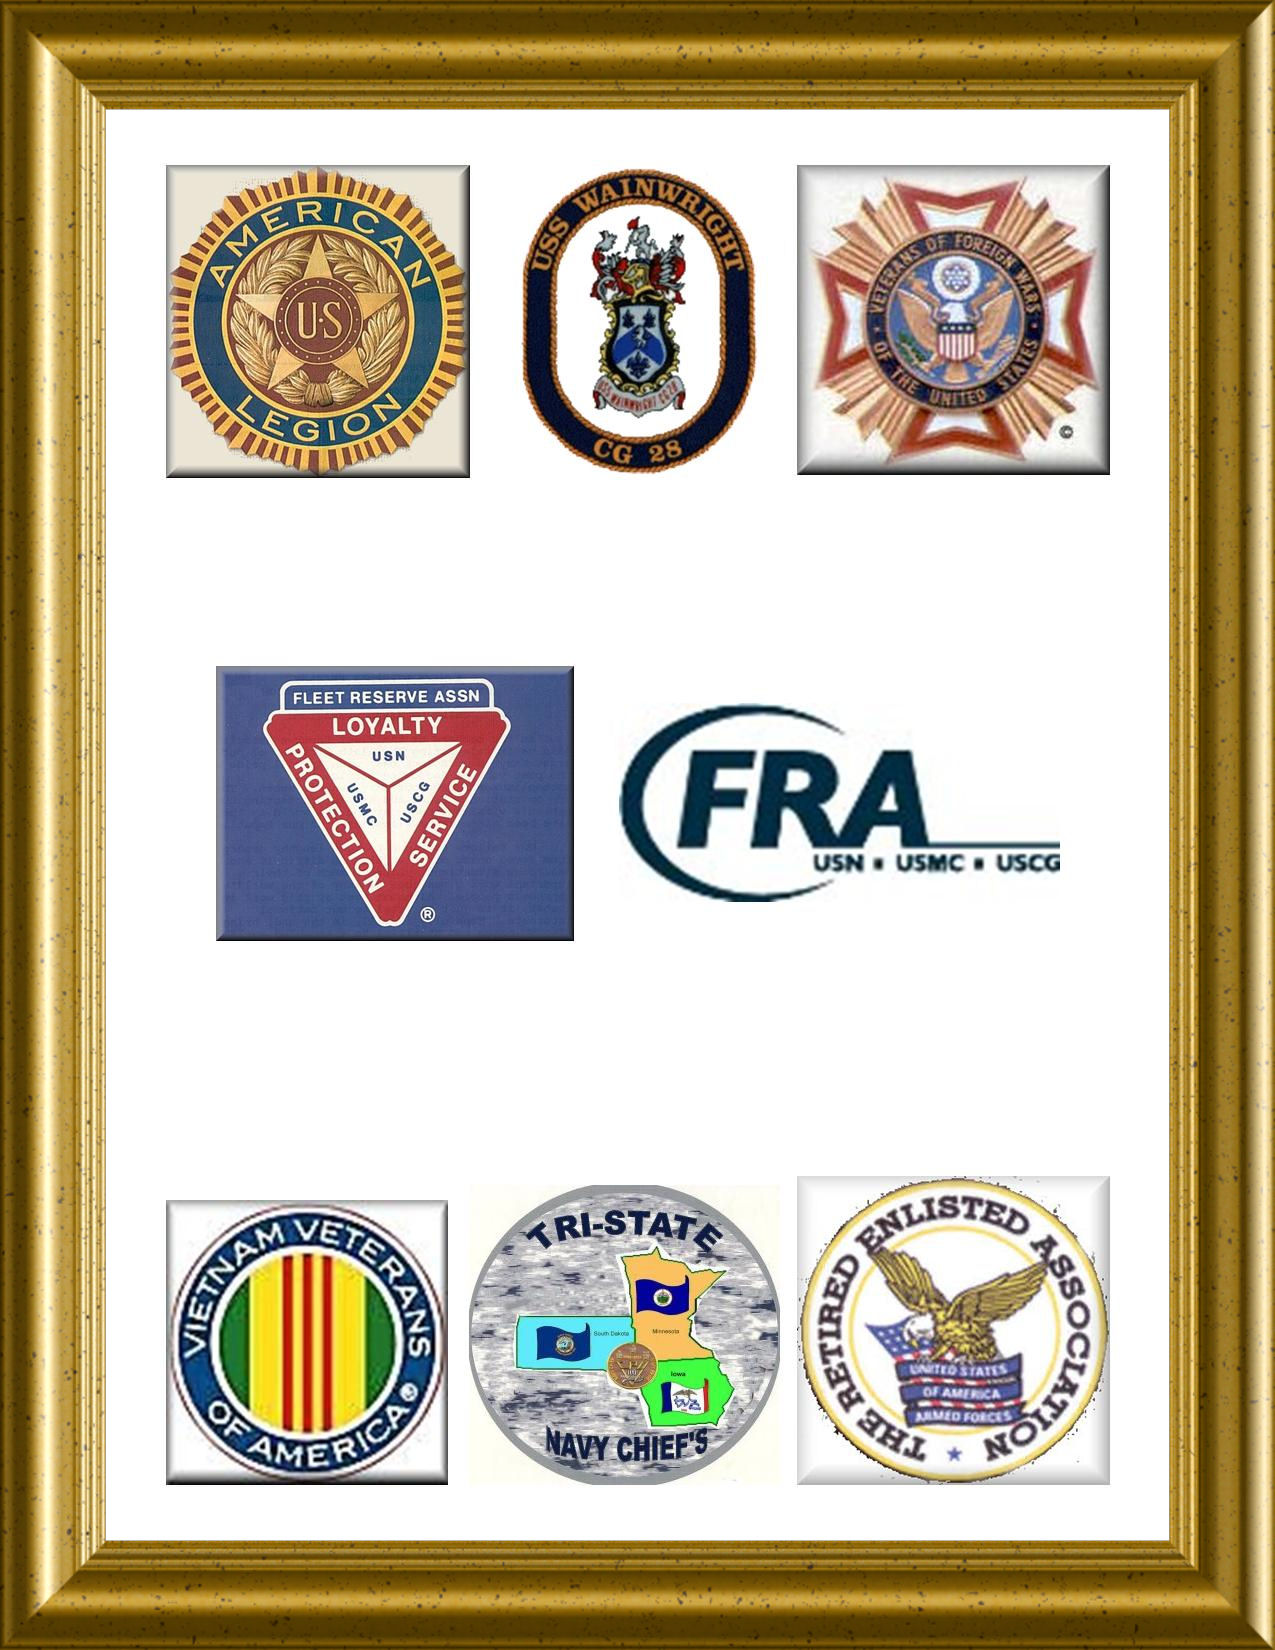 Roger Brooks (PNCS Brooks Initiated 16 Jan, 1976), PNCS - What military associations are you a member of, if any? What specific benefits do you derive from your memberships?